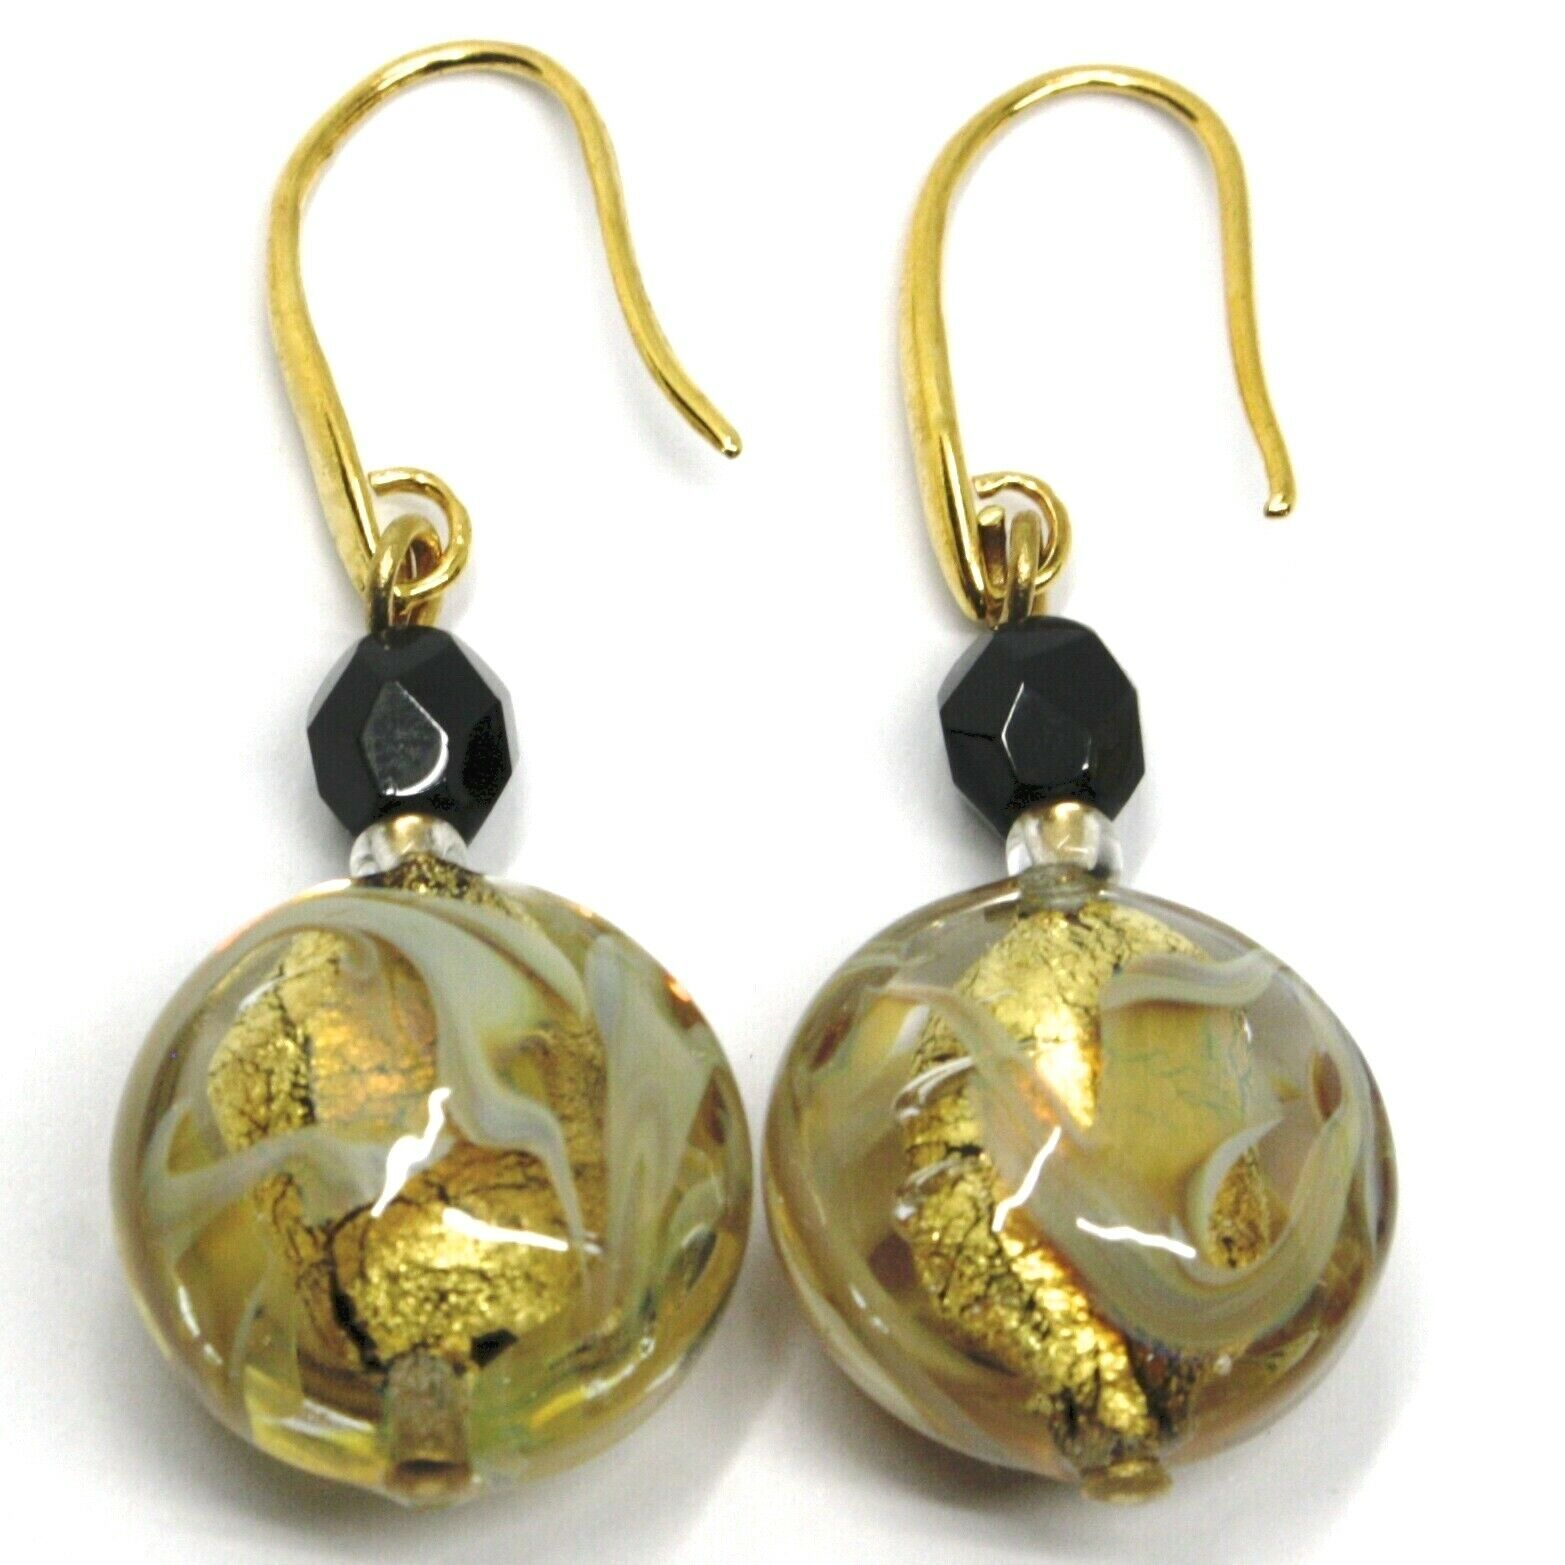 PENDANT HOOK EARRINGS BLACK YELLOW DISC MURANO GLASS GOLD LEAF MADE IN ITALY